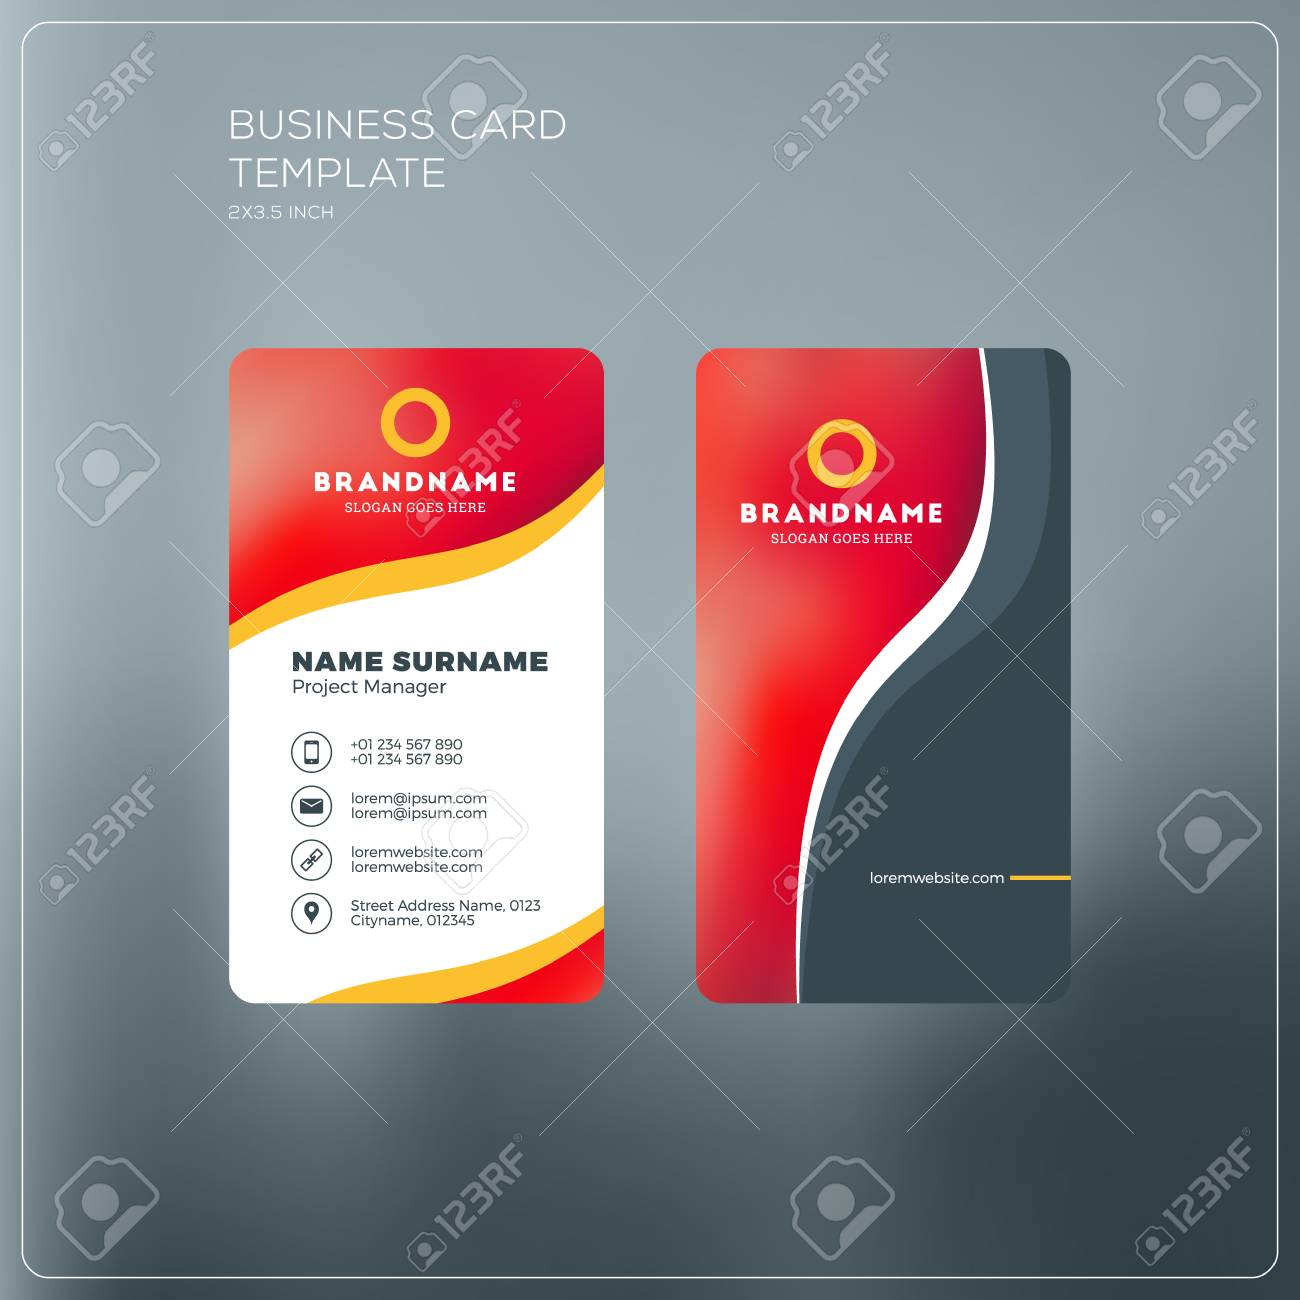 Vertical business card print template personal business card vector vertical business card print template personal business card with company logo black and yellow colors clean flat design vector illustration colourmoves